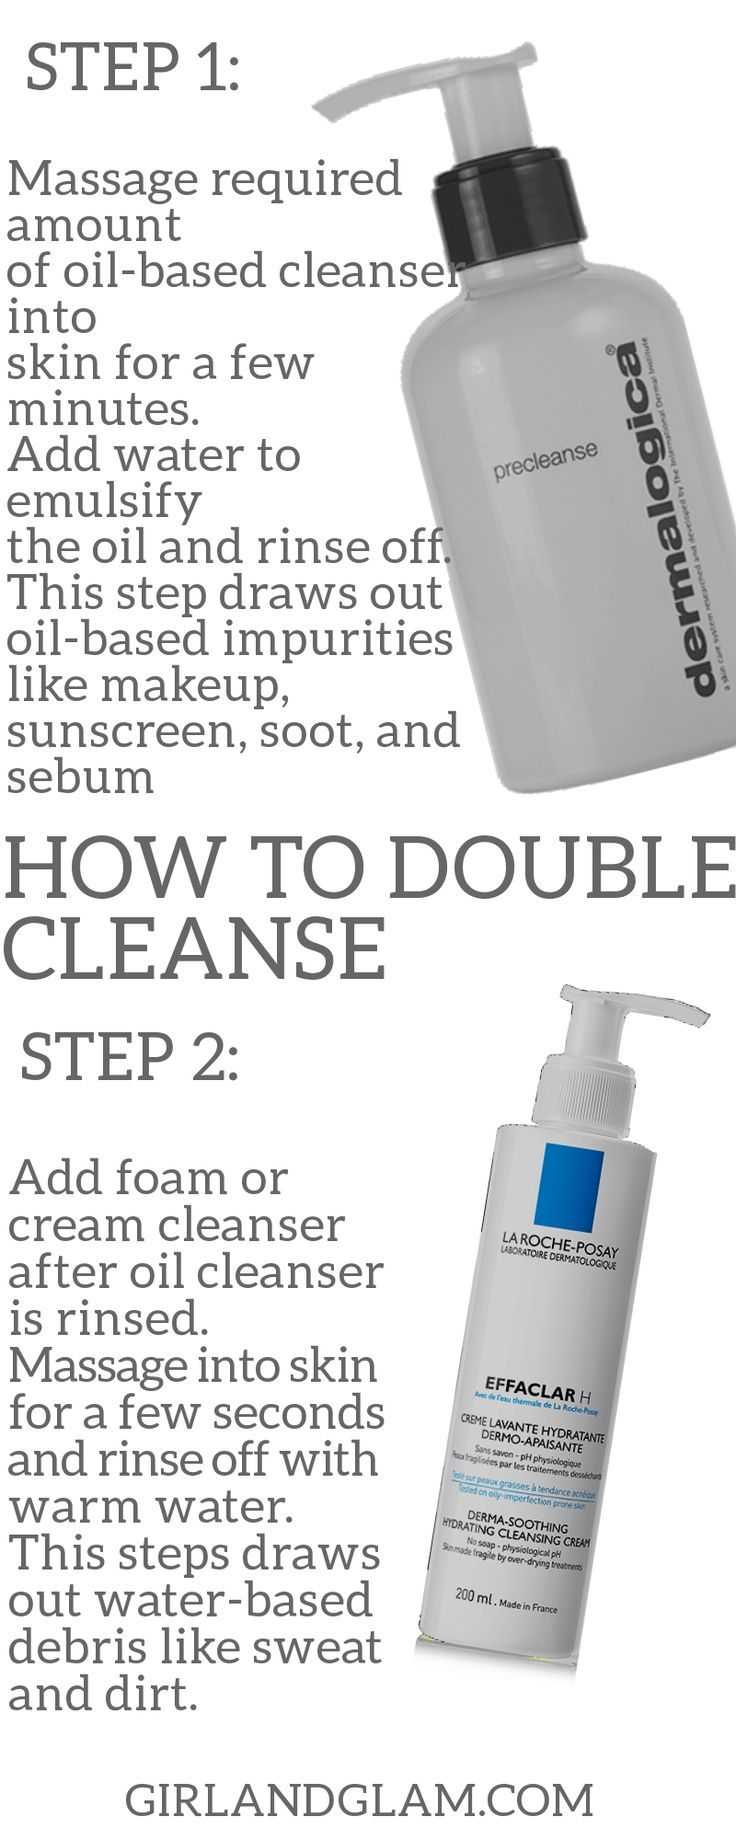 How To Double Cleanse In 2020 Oil Based Cleanser Double Cleansing Skin Cleanser Products